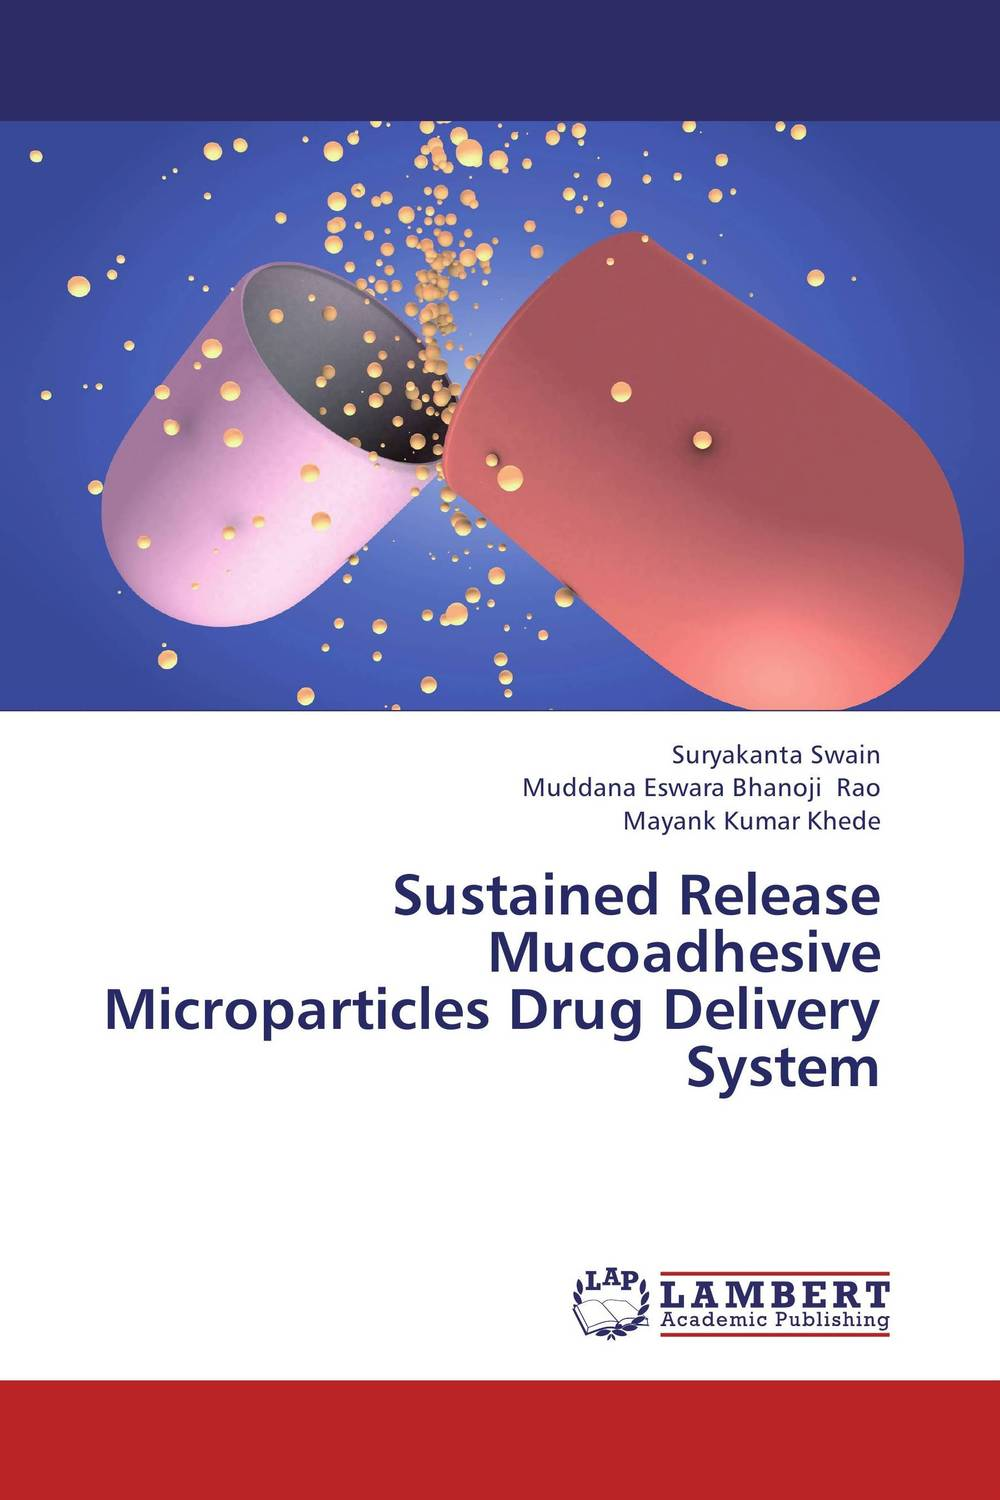 Sustained Release Mucoadhesive Microparticles Drug Delivery System modification of polymeric microspheres for sustained drug delivery